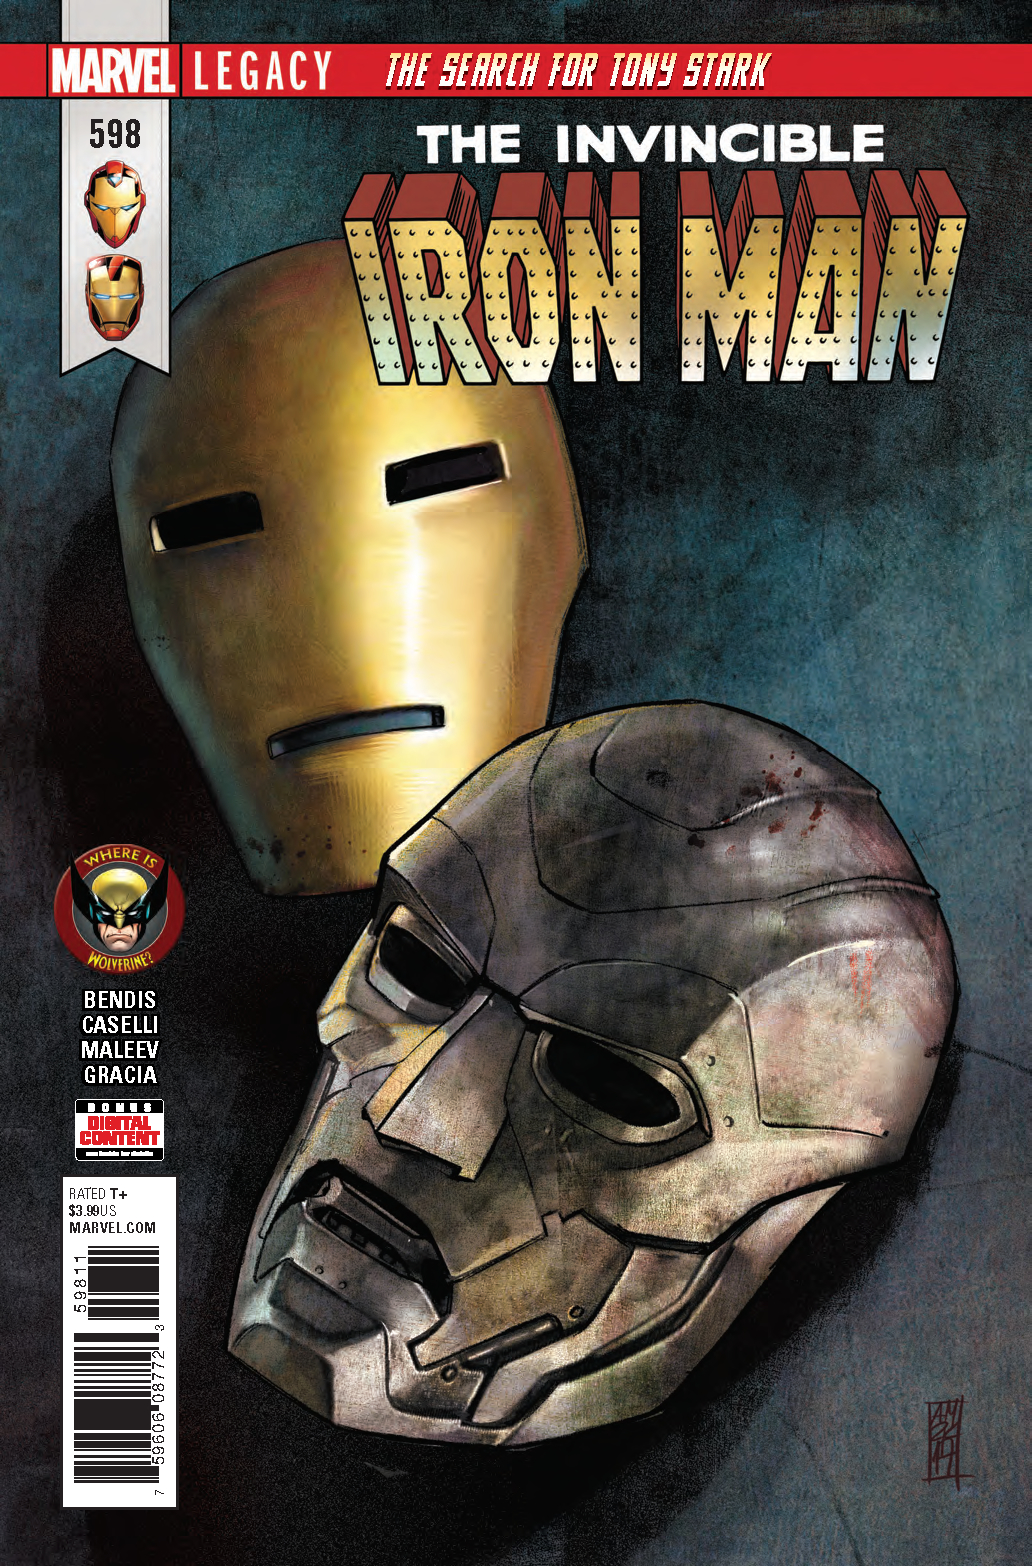 INVINCIBLE IRON MAN #598 LEG WW